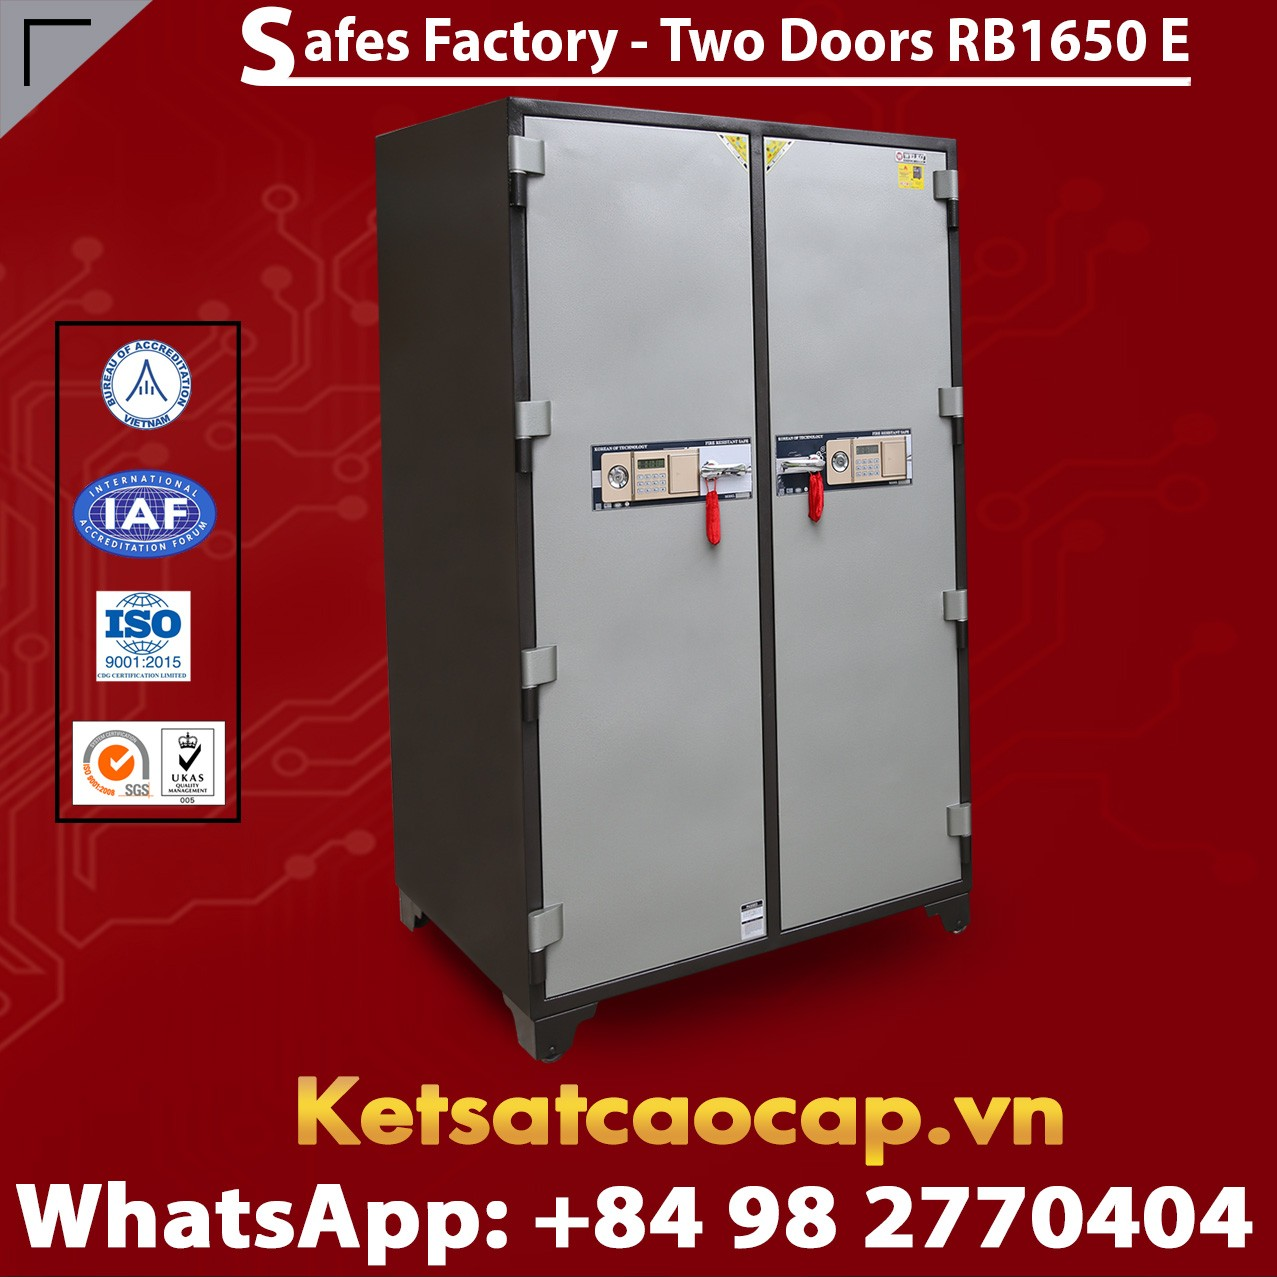 Bank Safes RB1650 E Smart Locking System Secure Safe Box